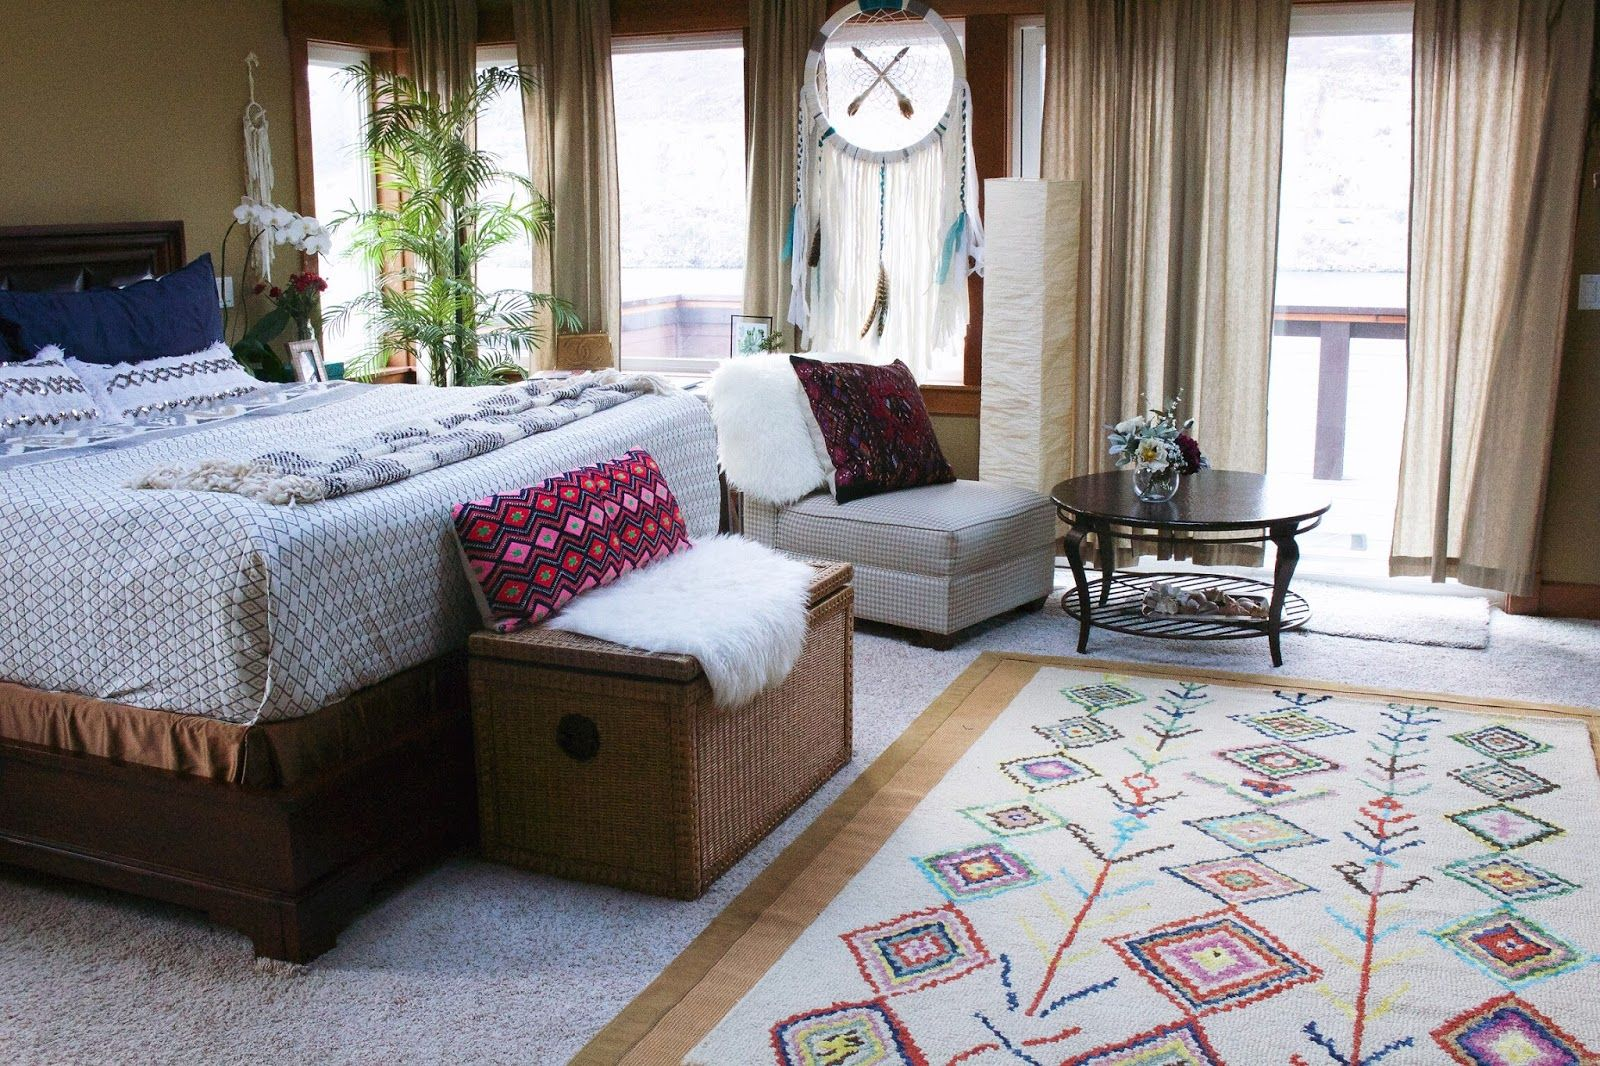 Interior Design My Bedroom Featuring Rugs Usa's Berber Moroccan Endearing Design My Bedroom For Me 2018